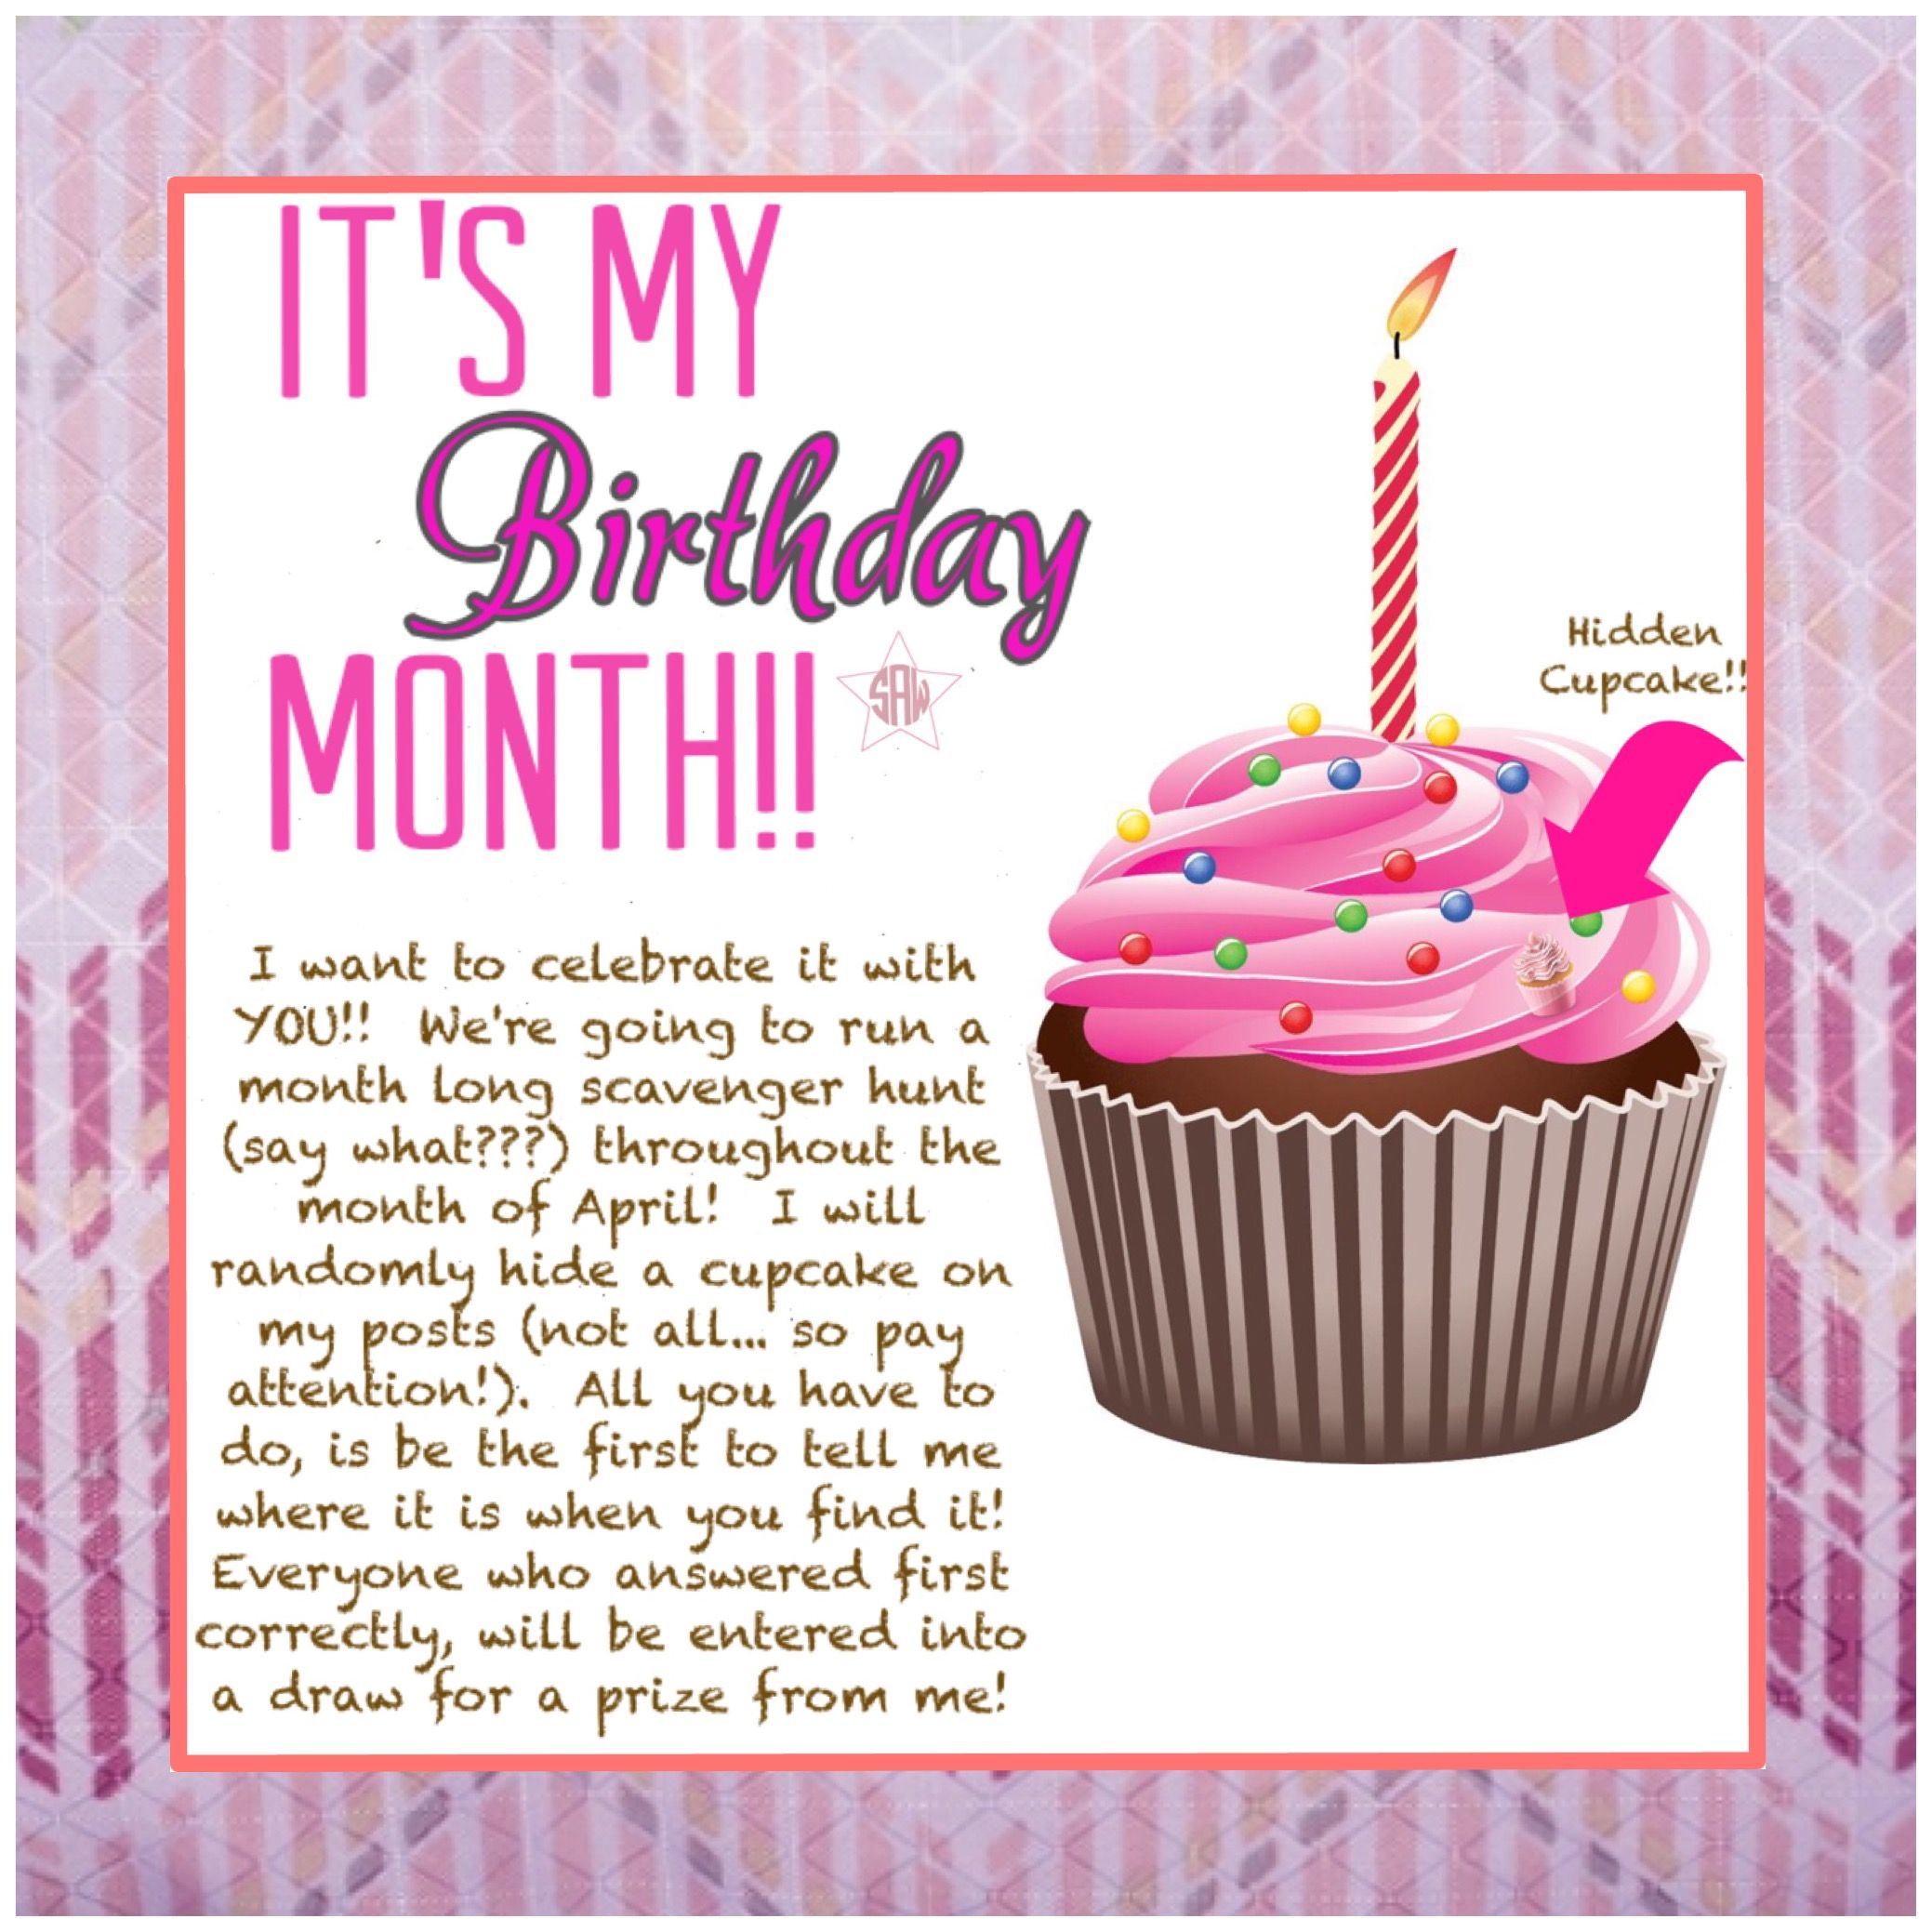 Direct sales It's my birthday month idea!! Graphic for VIP